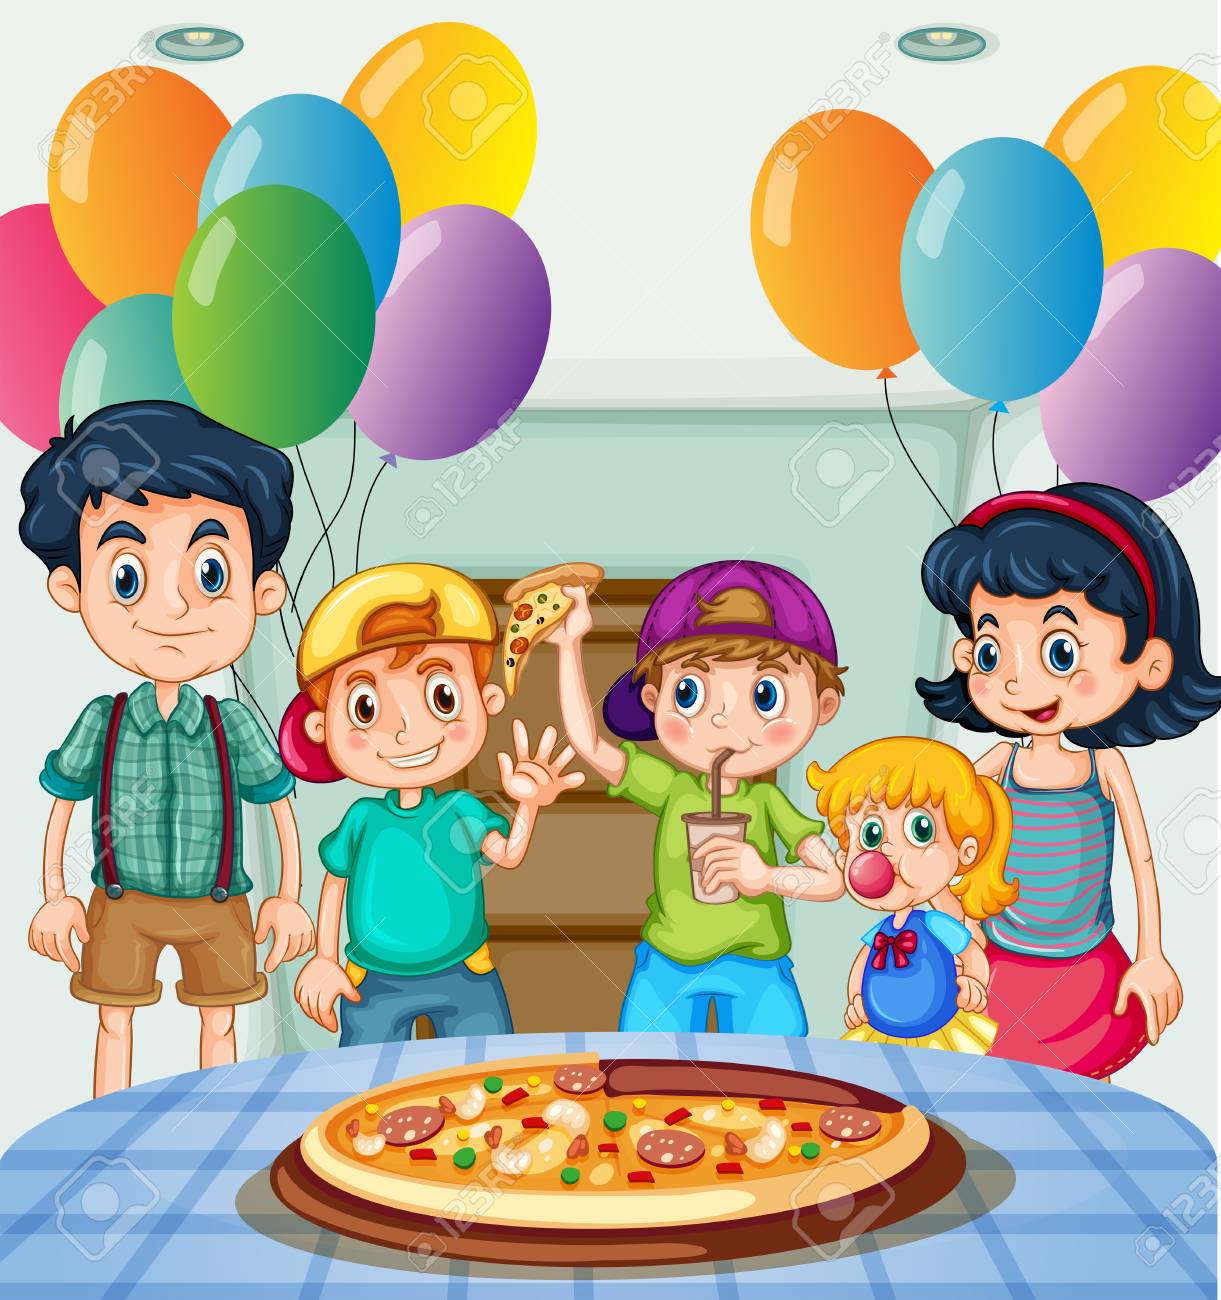 Kids eating pizza at party illustration.